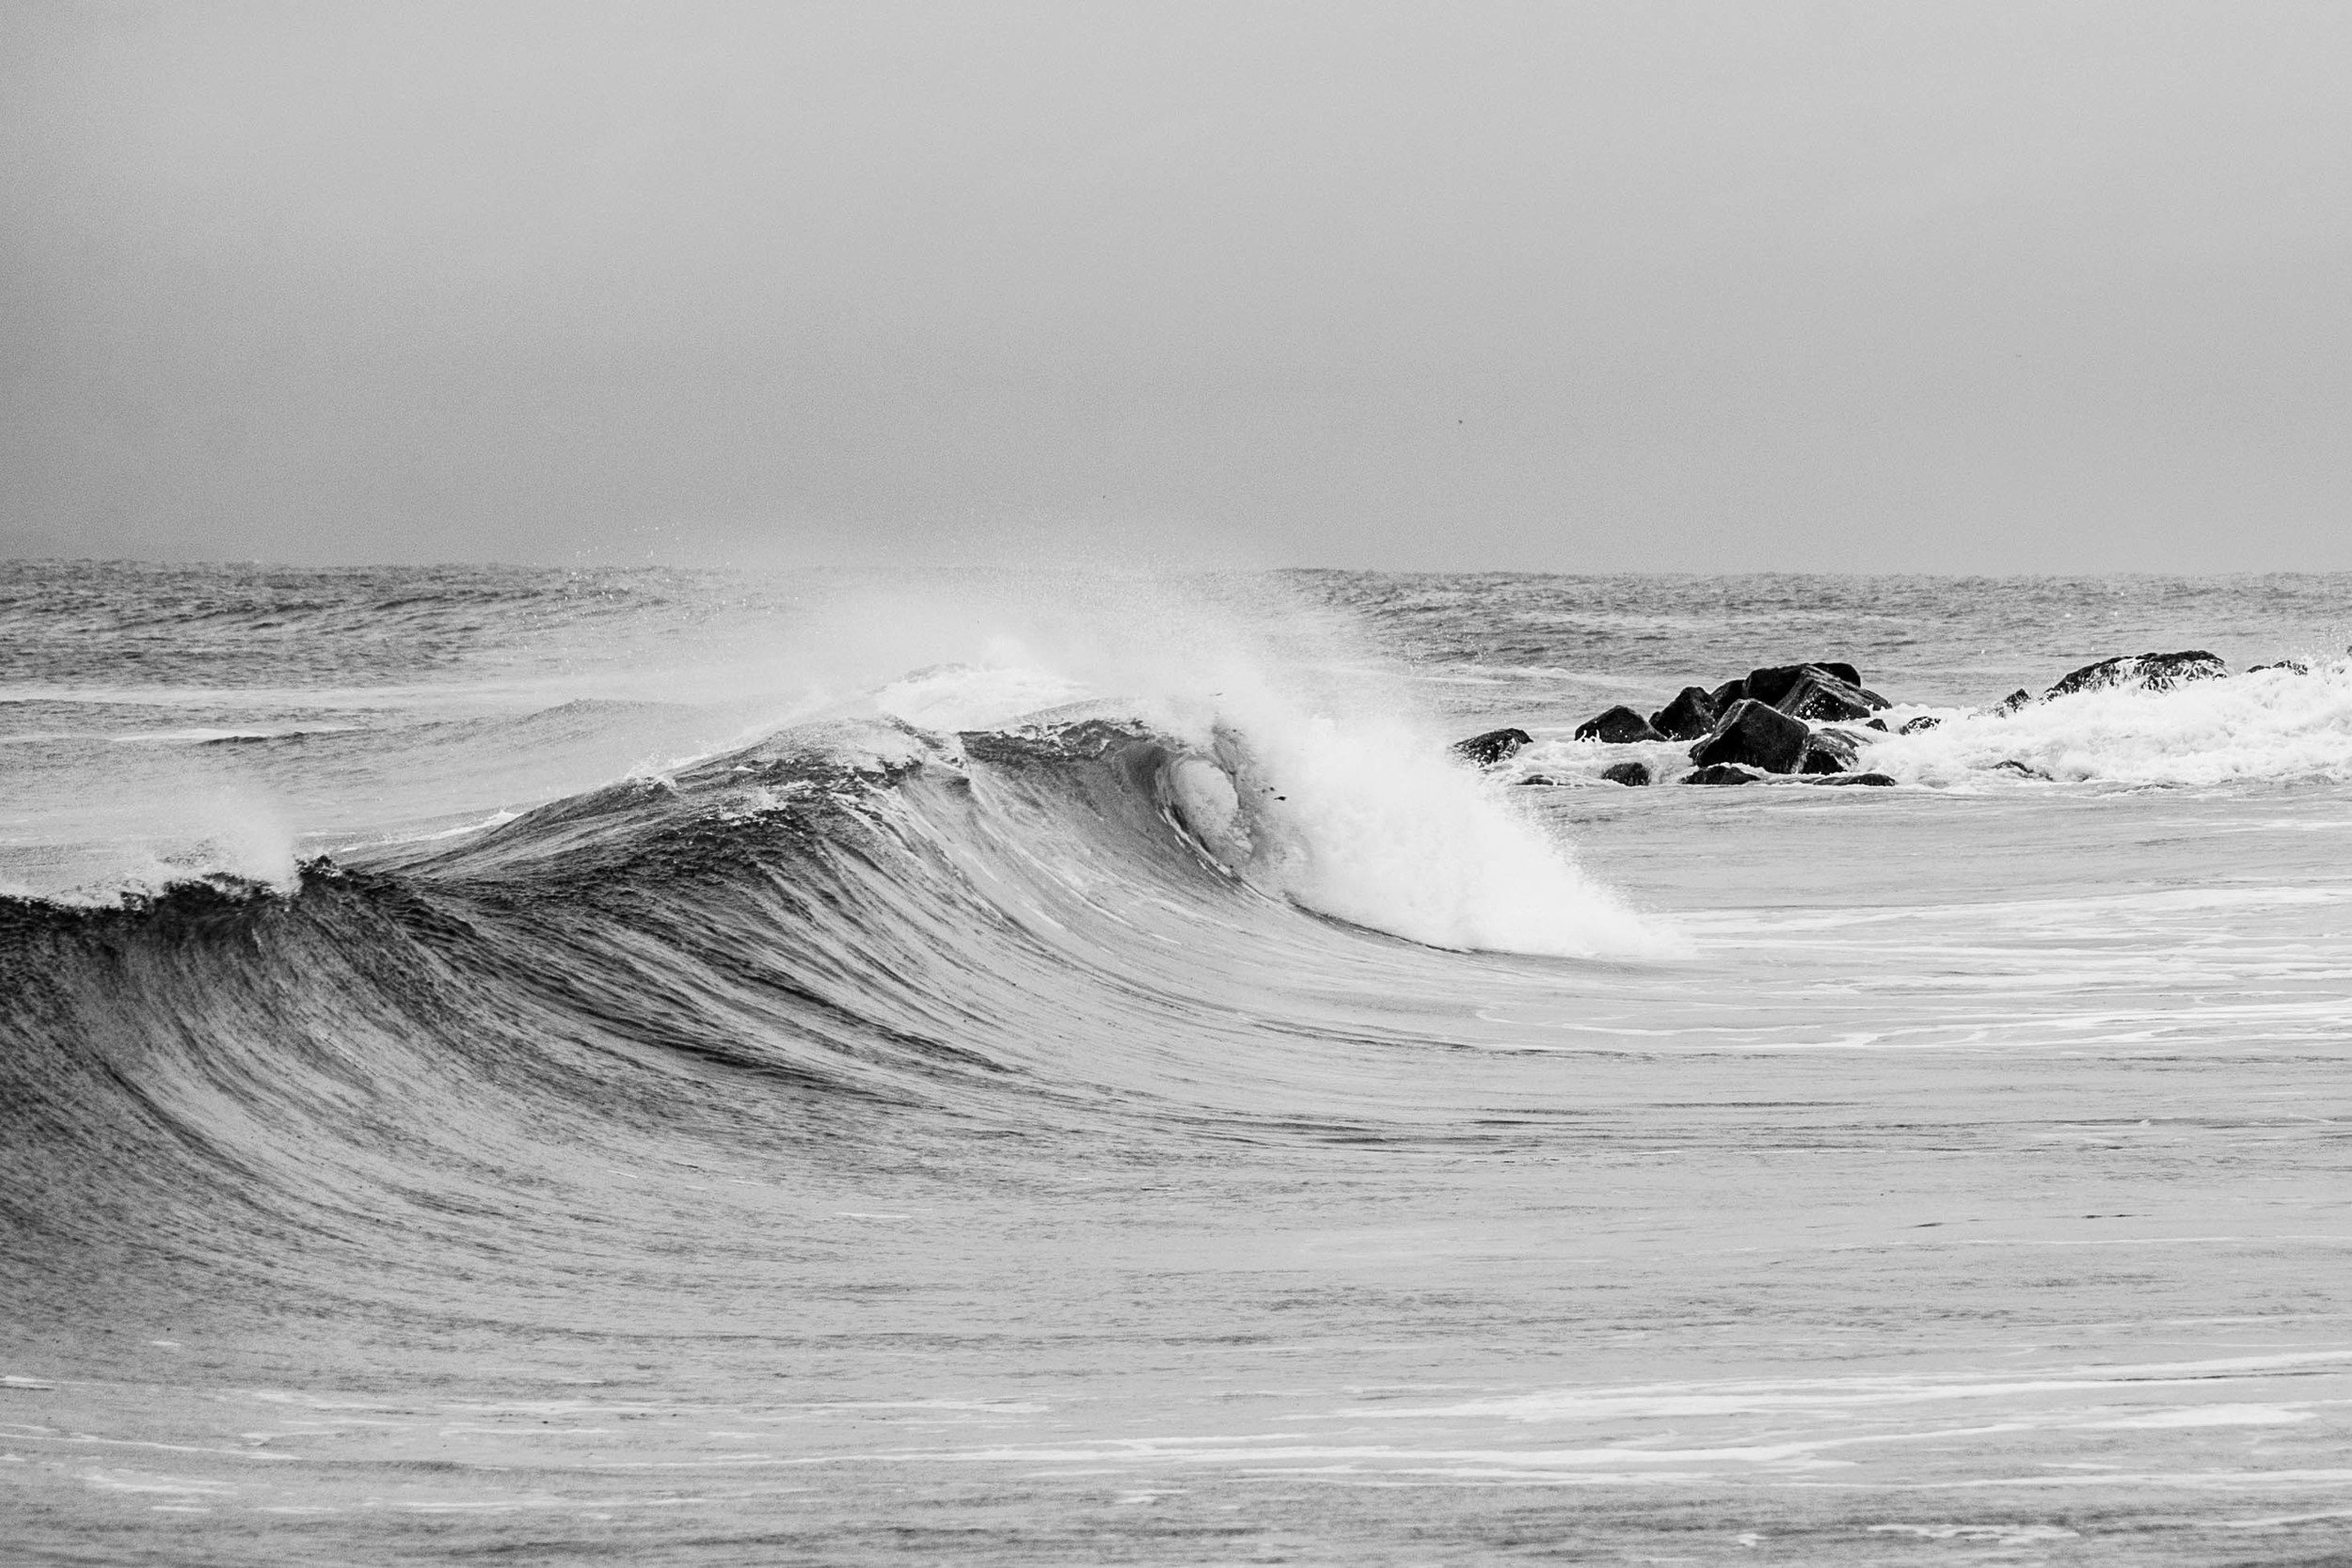 Plenty of puntable sections offered up due to the ENE winds from this swell.